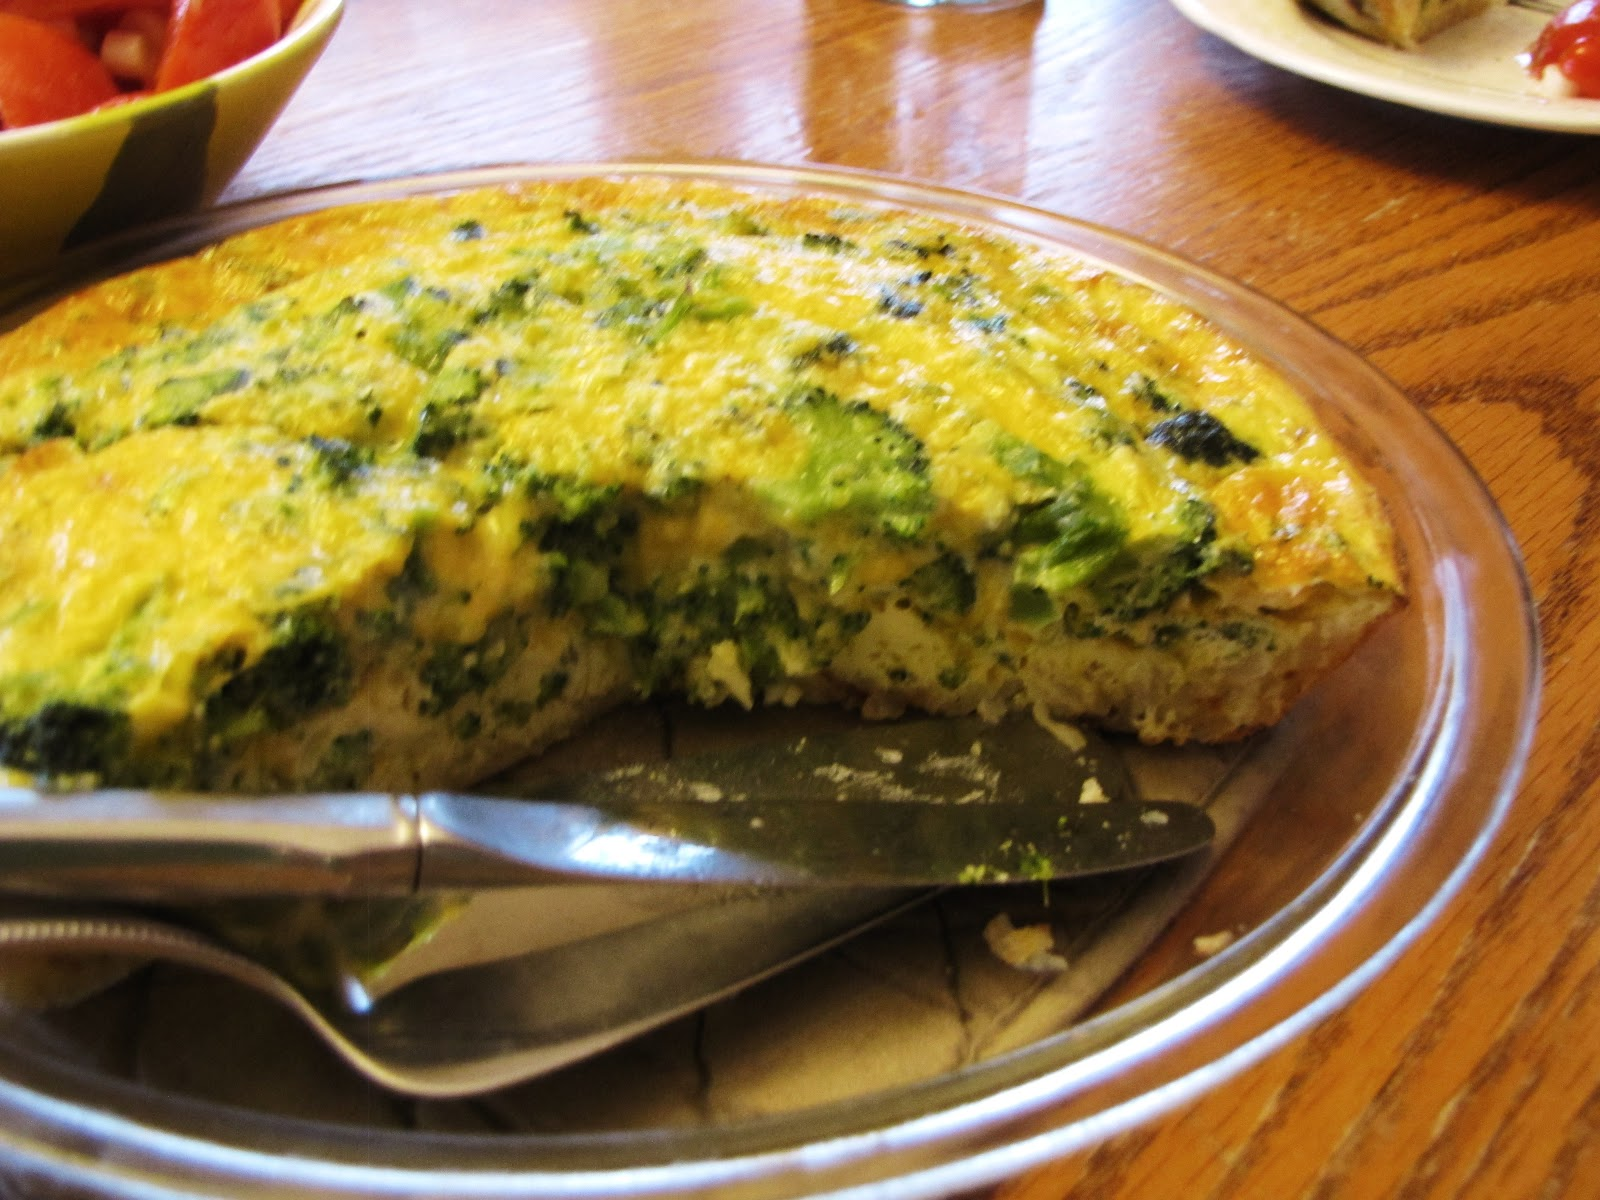 made broccoli omele t with tomato salad the broccoli omelet was really ...